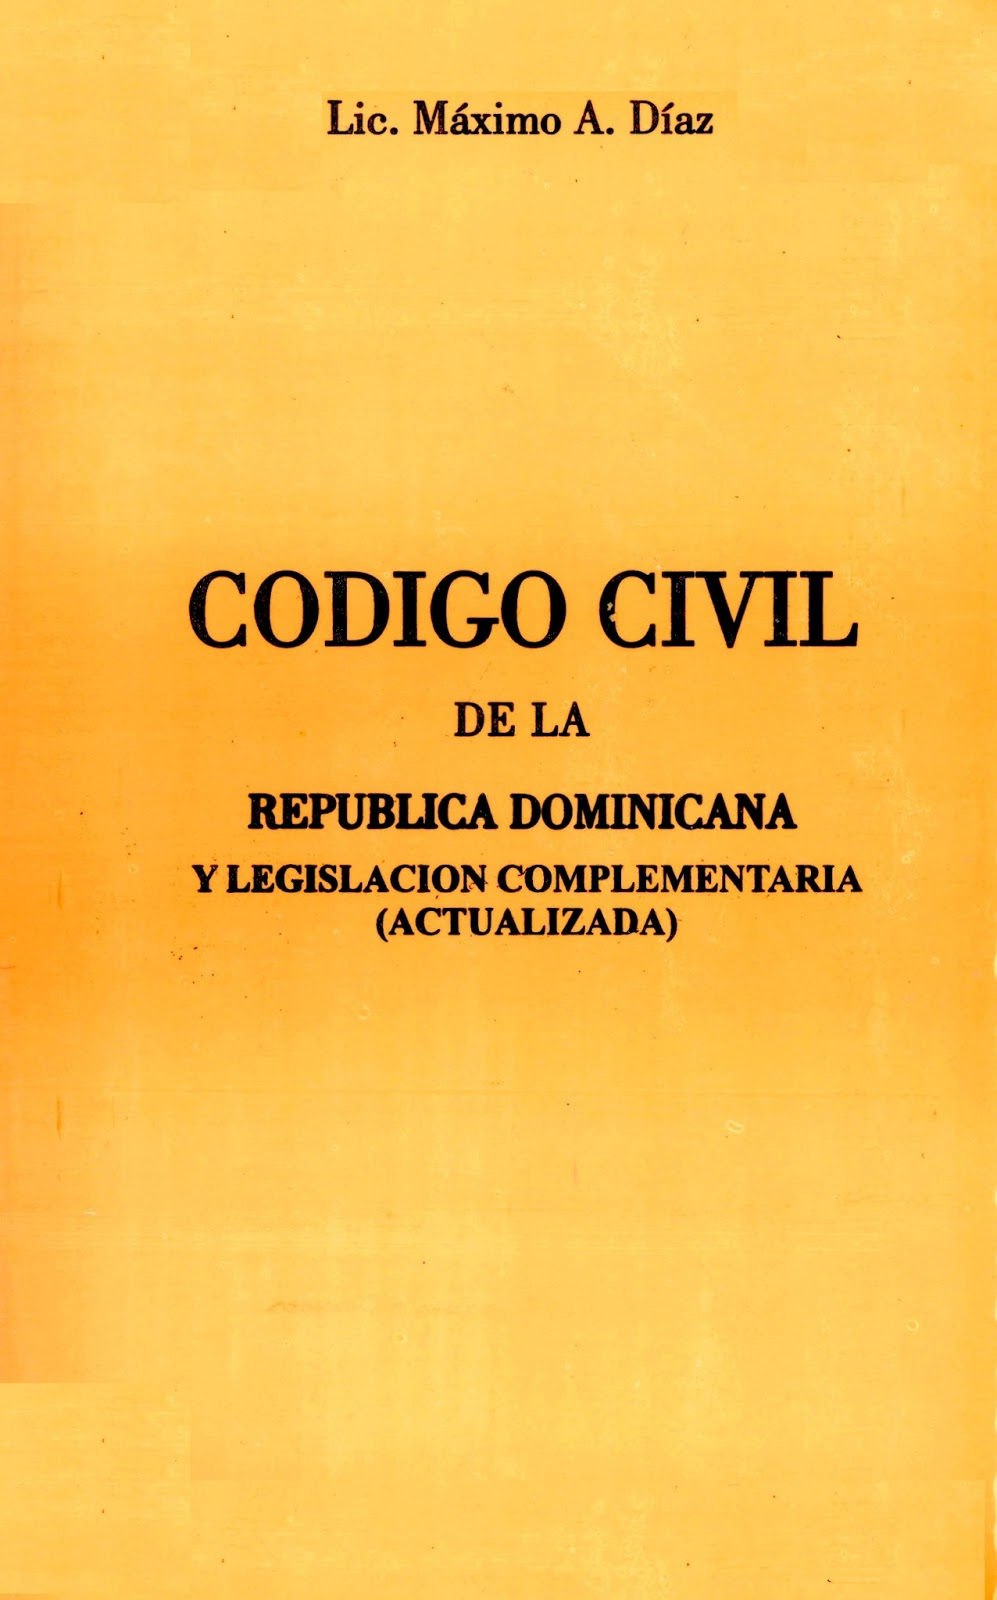 Matrimonio Uruguay Codigo Civil : Codigo civil dominicano carlos felipe law firm